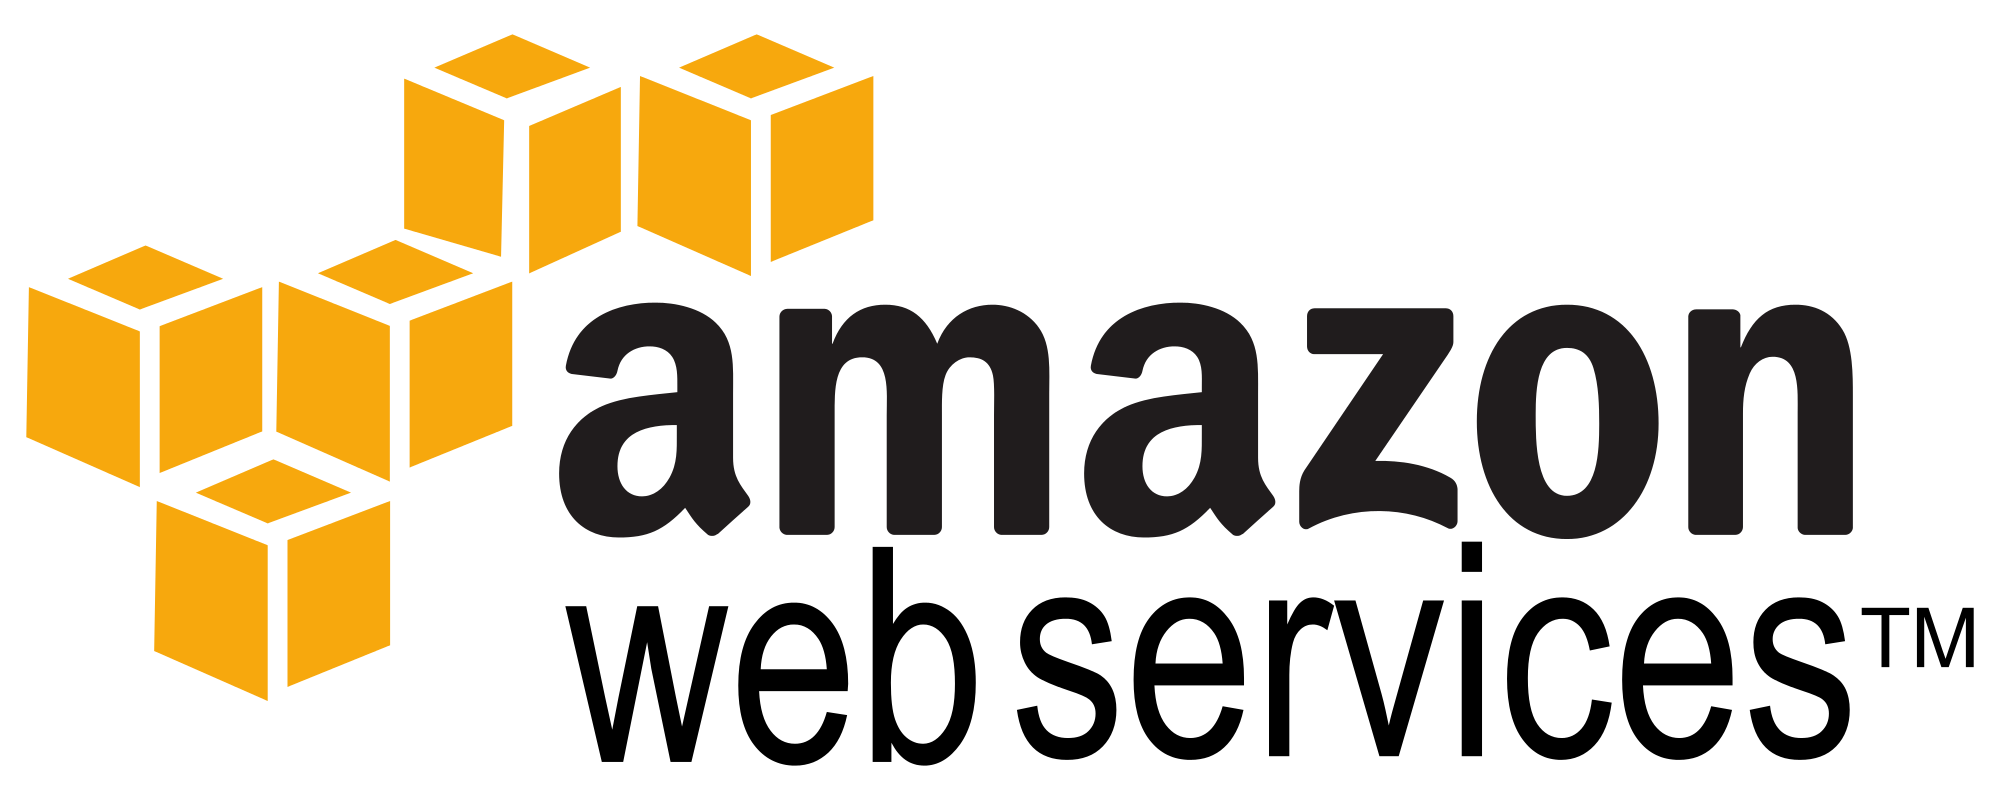 Amazon aws small logo 2015 11 11